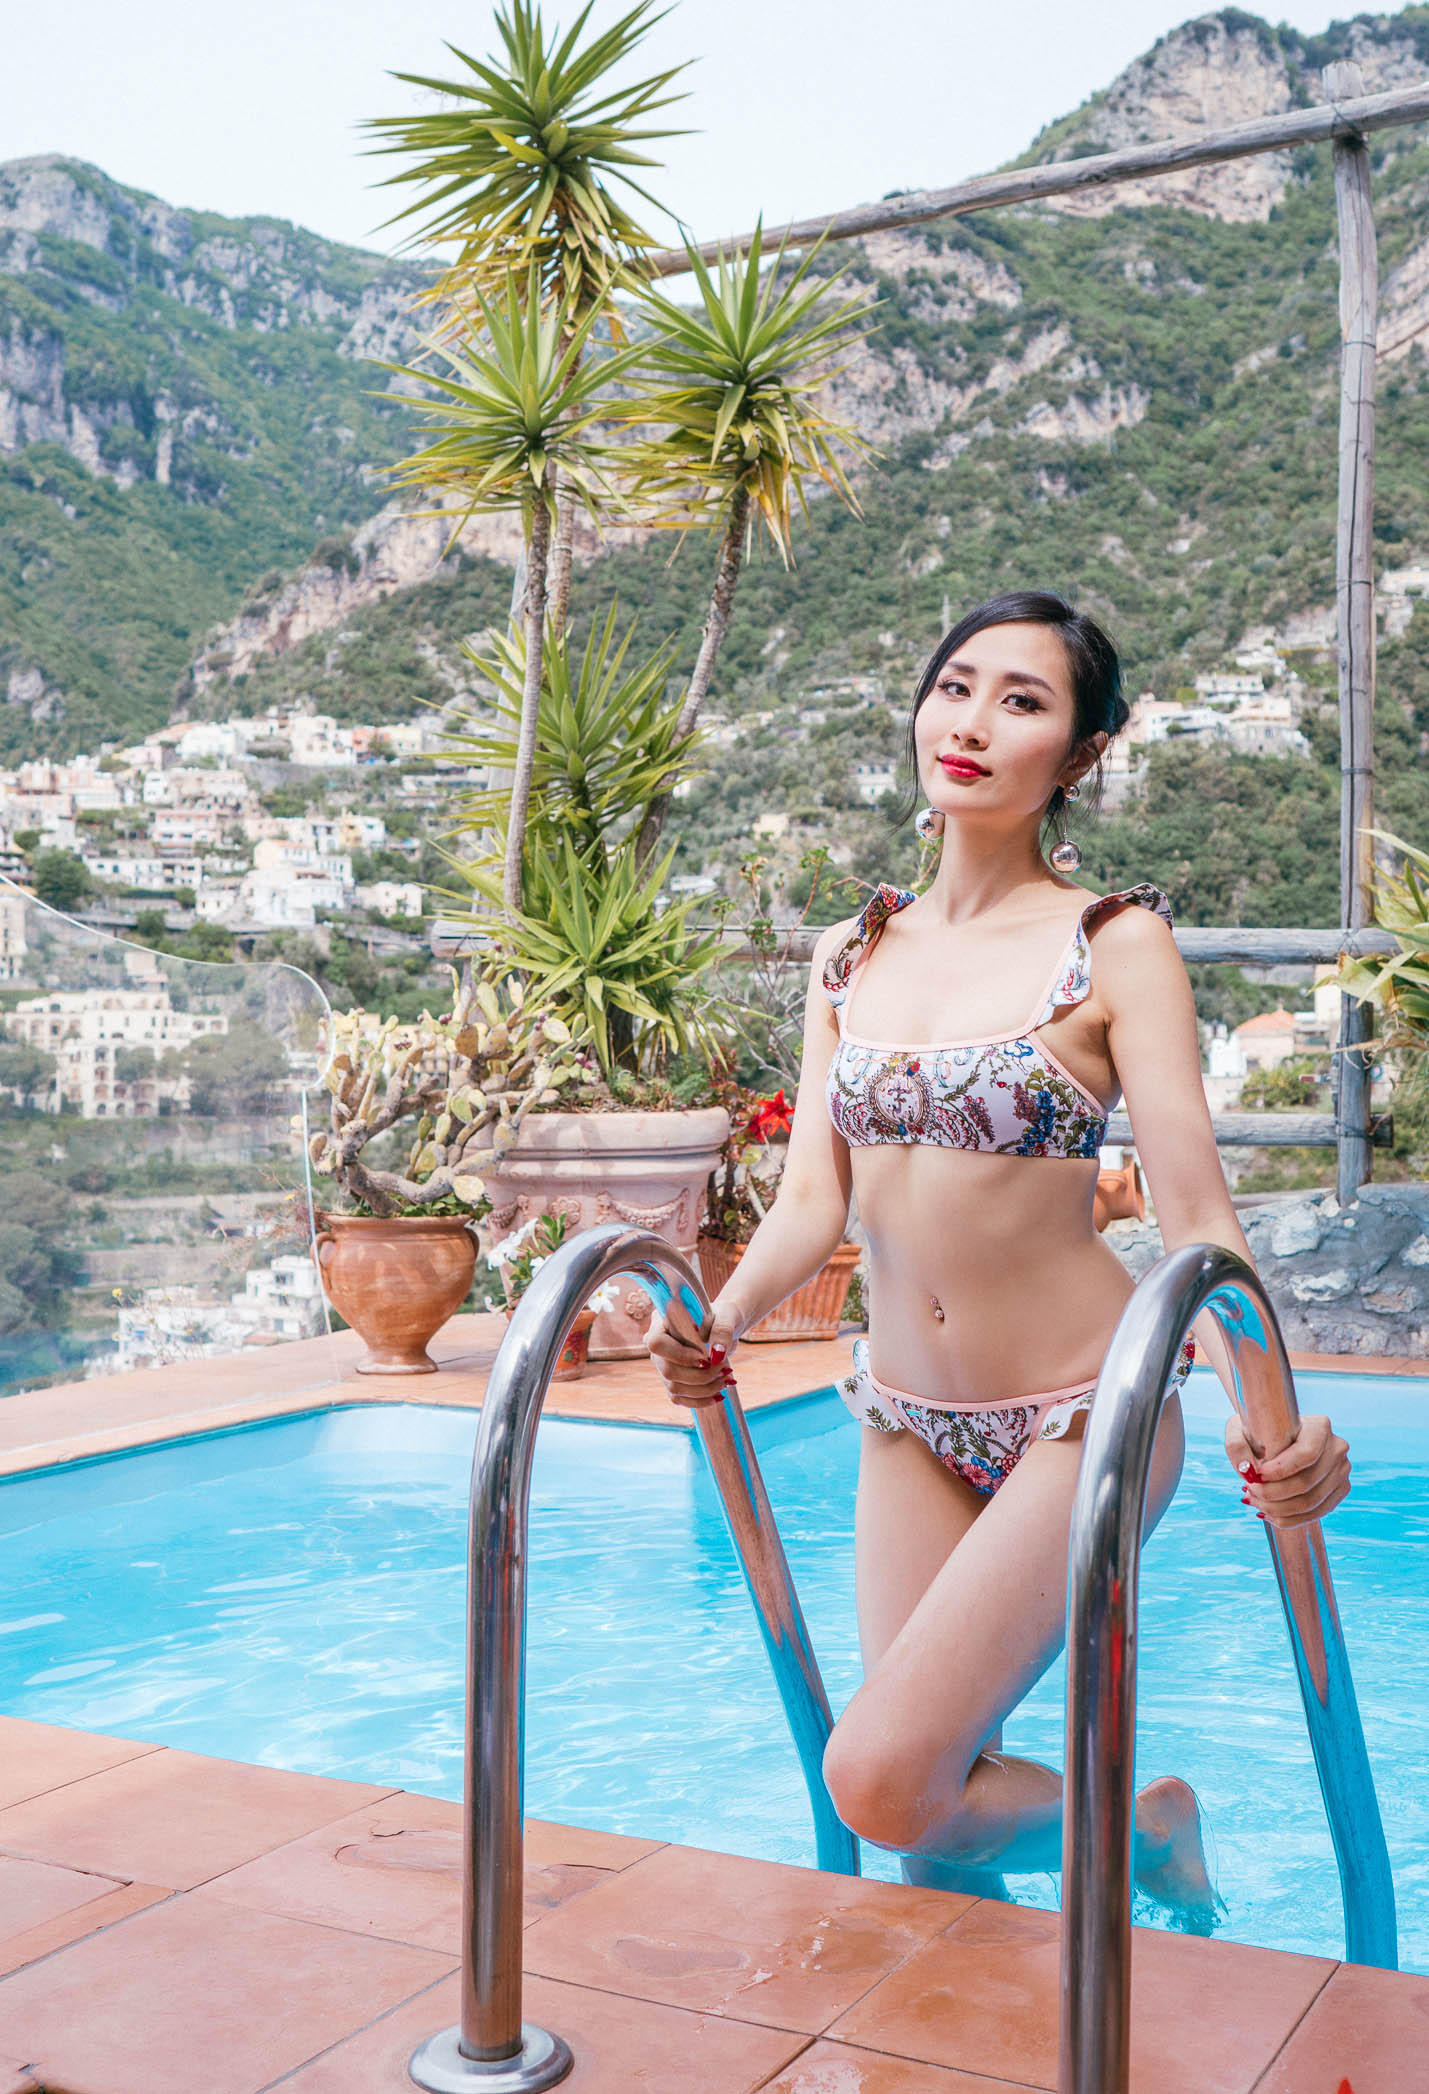 Tina Travels: Fendi Ruffle Bikini and Breakfasts With a View in Positano, Italy | Of Leather and Lace